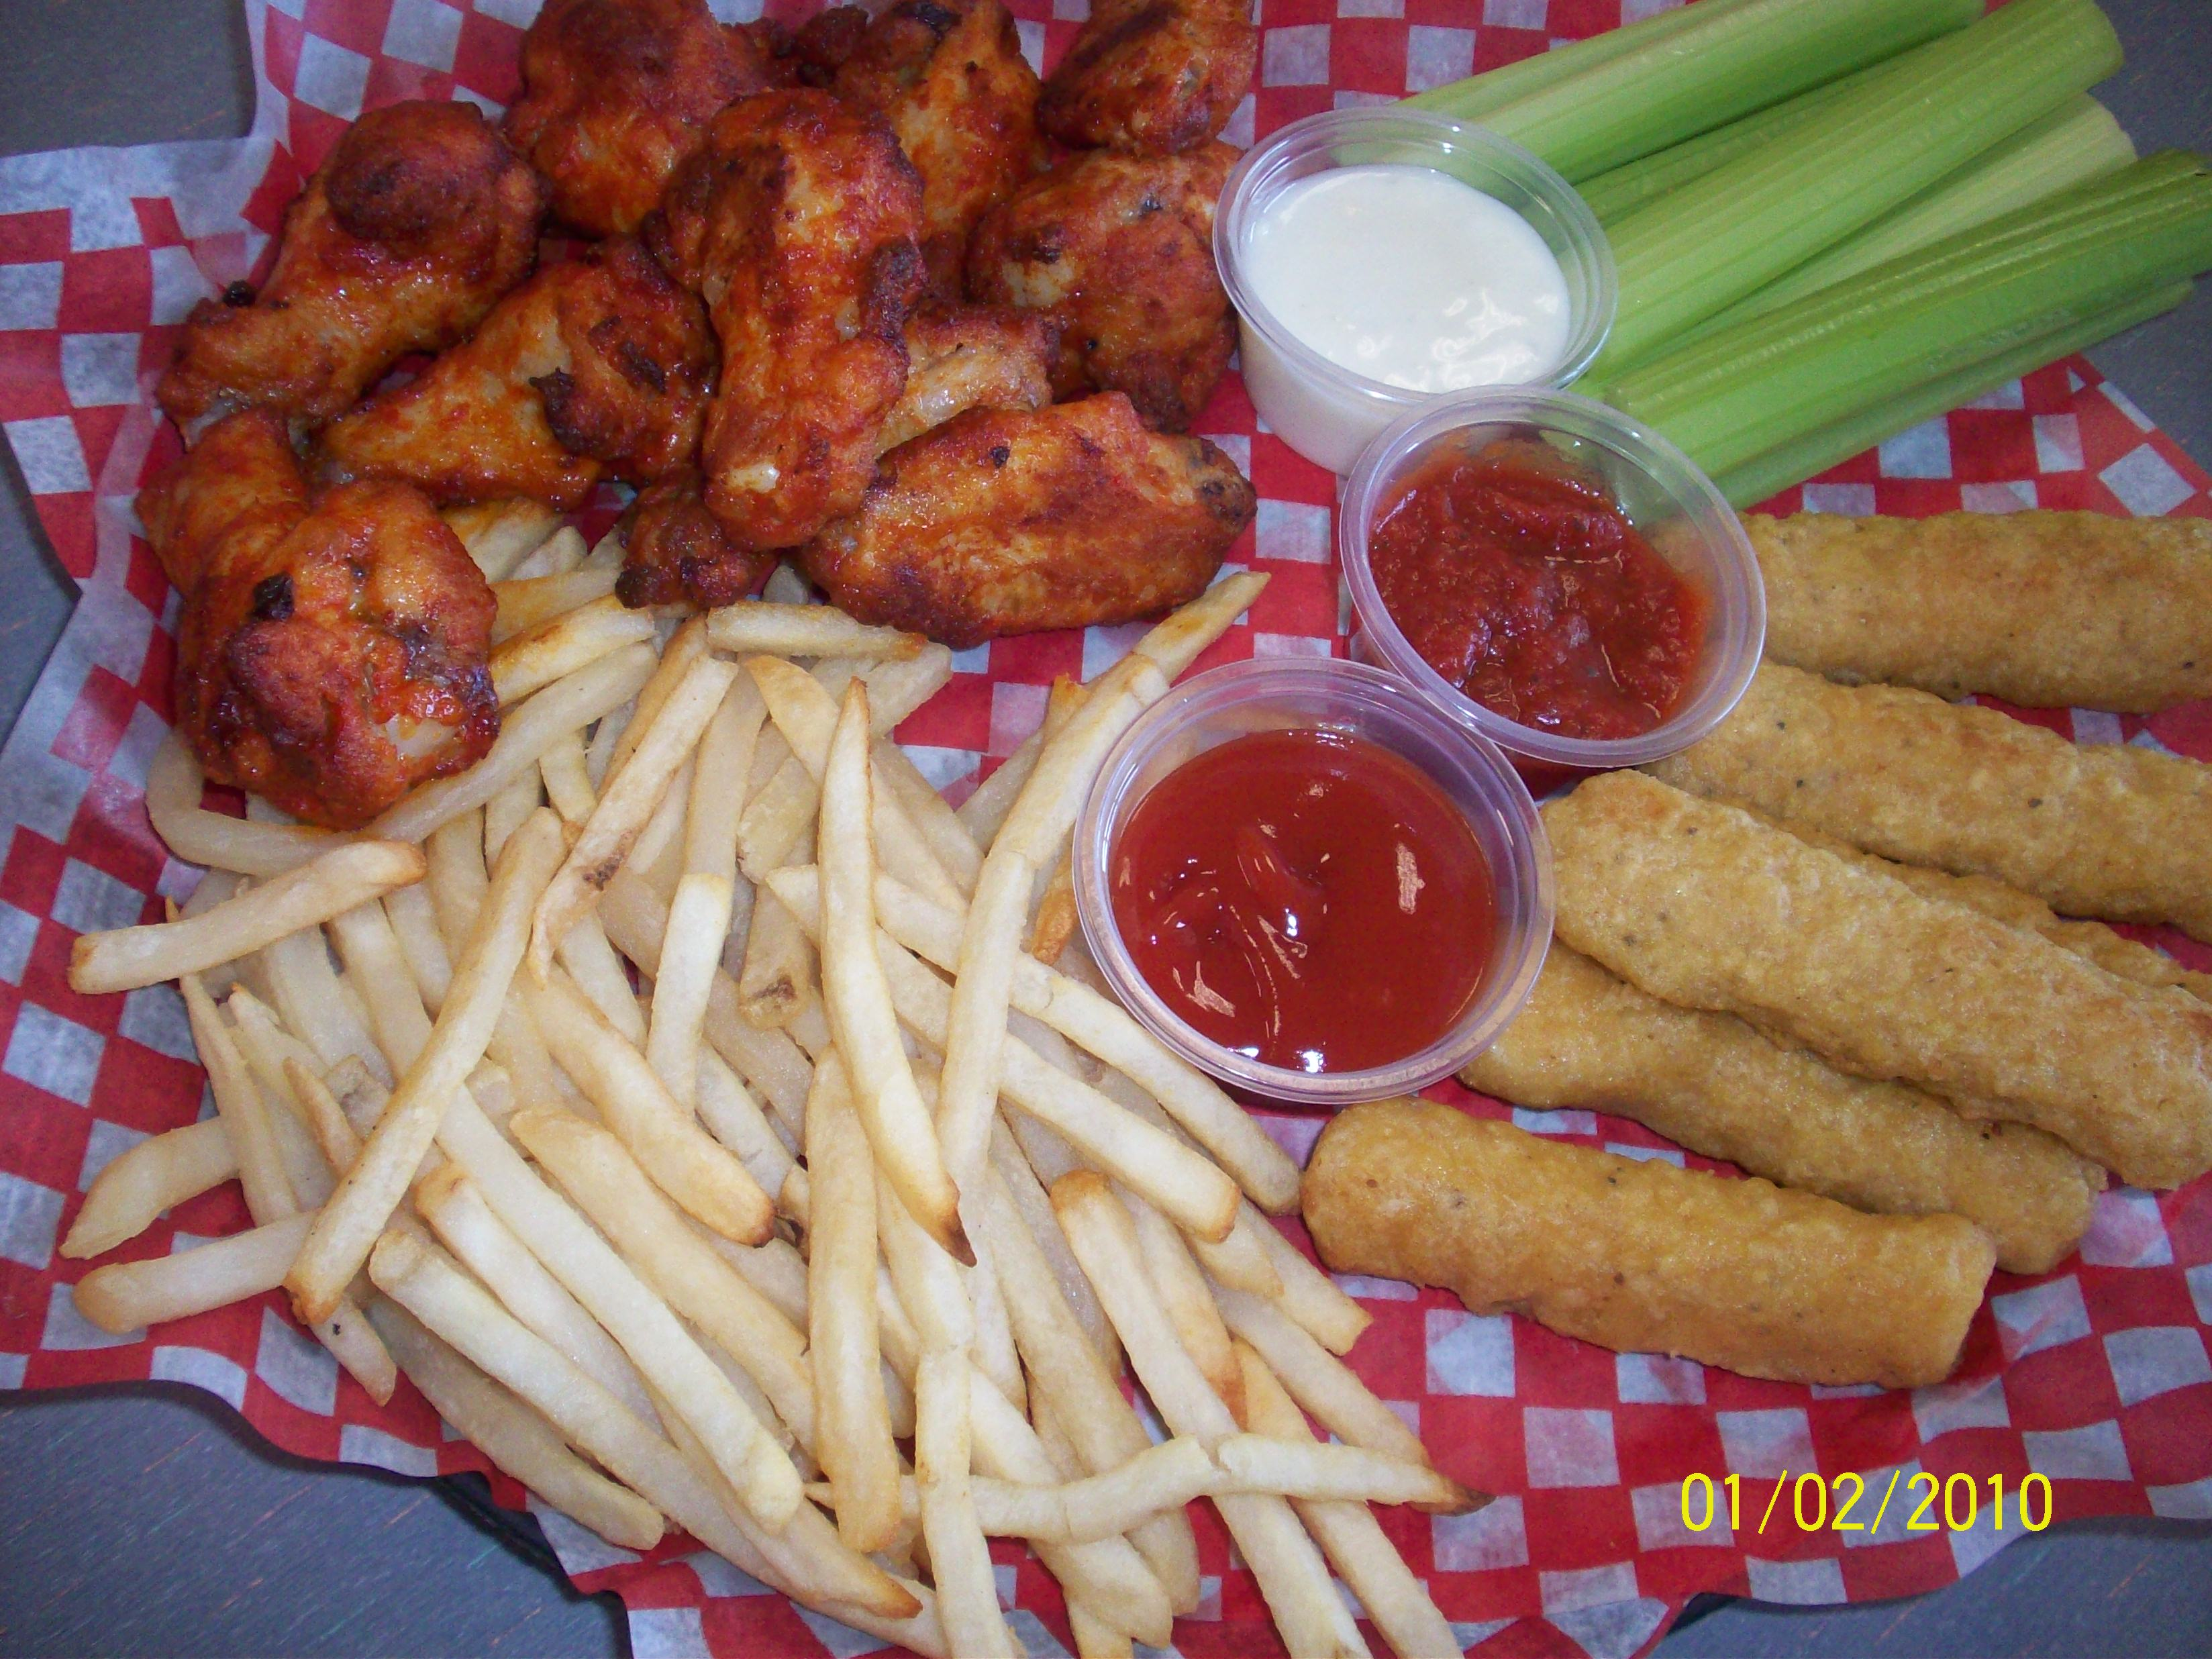 cutie • 2010-02-01 • Buffalo wings, cheesesticks, fries and celery